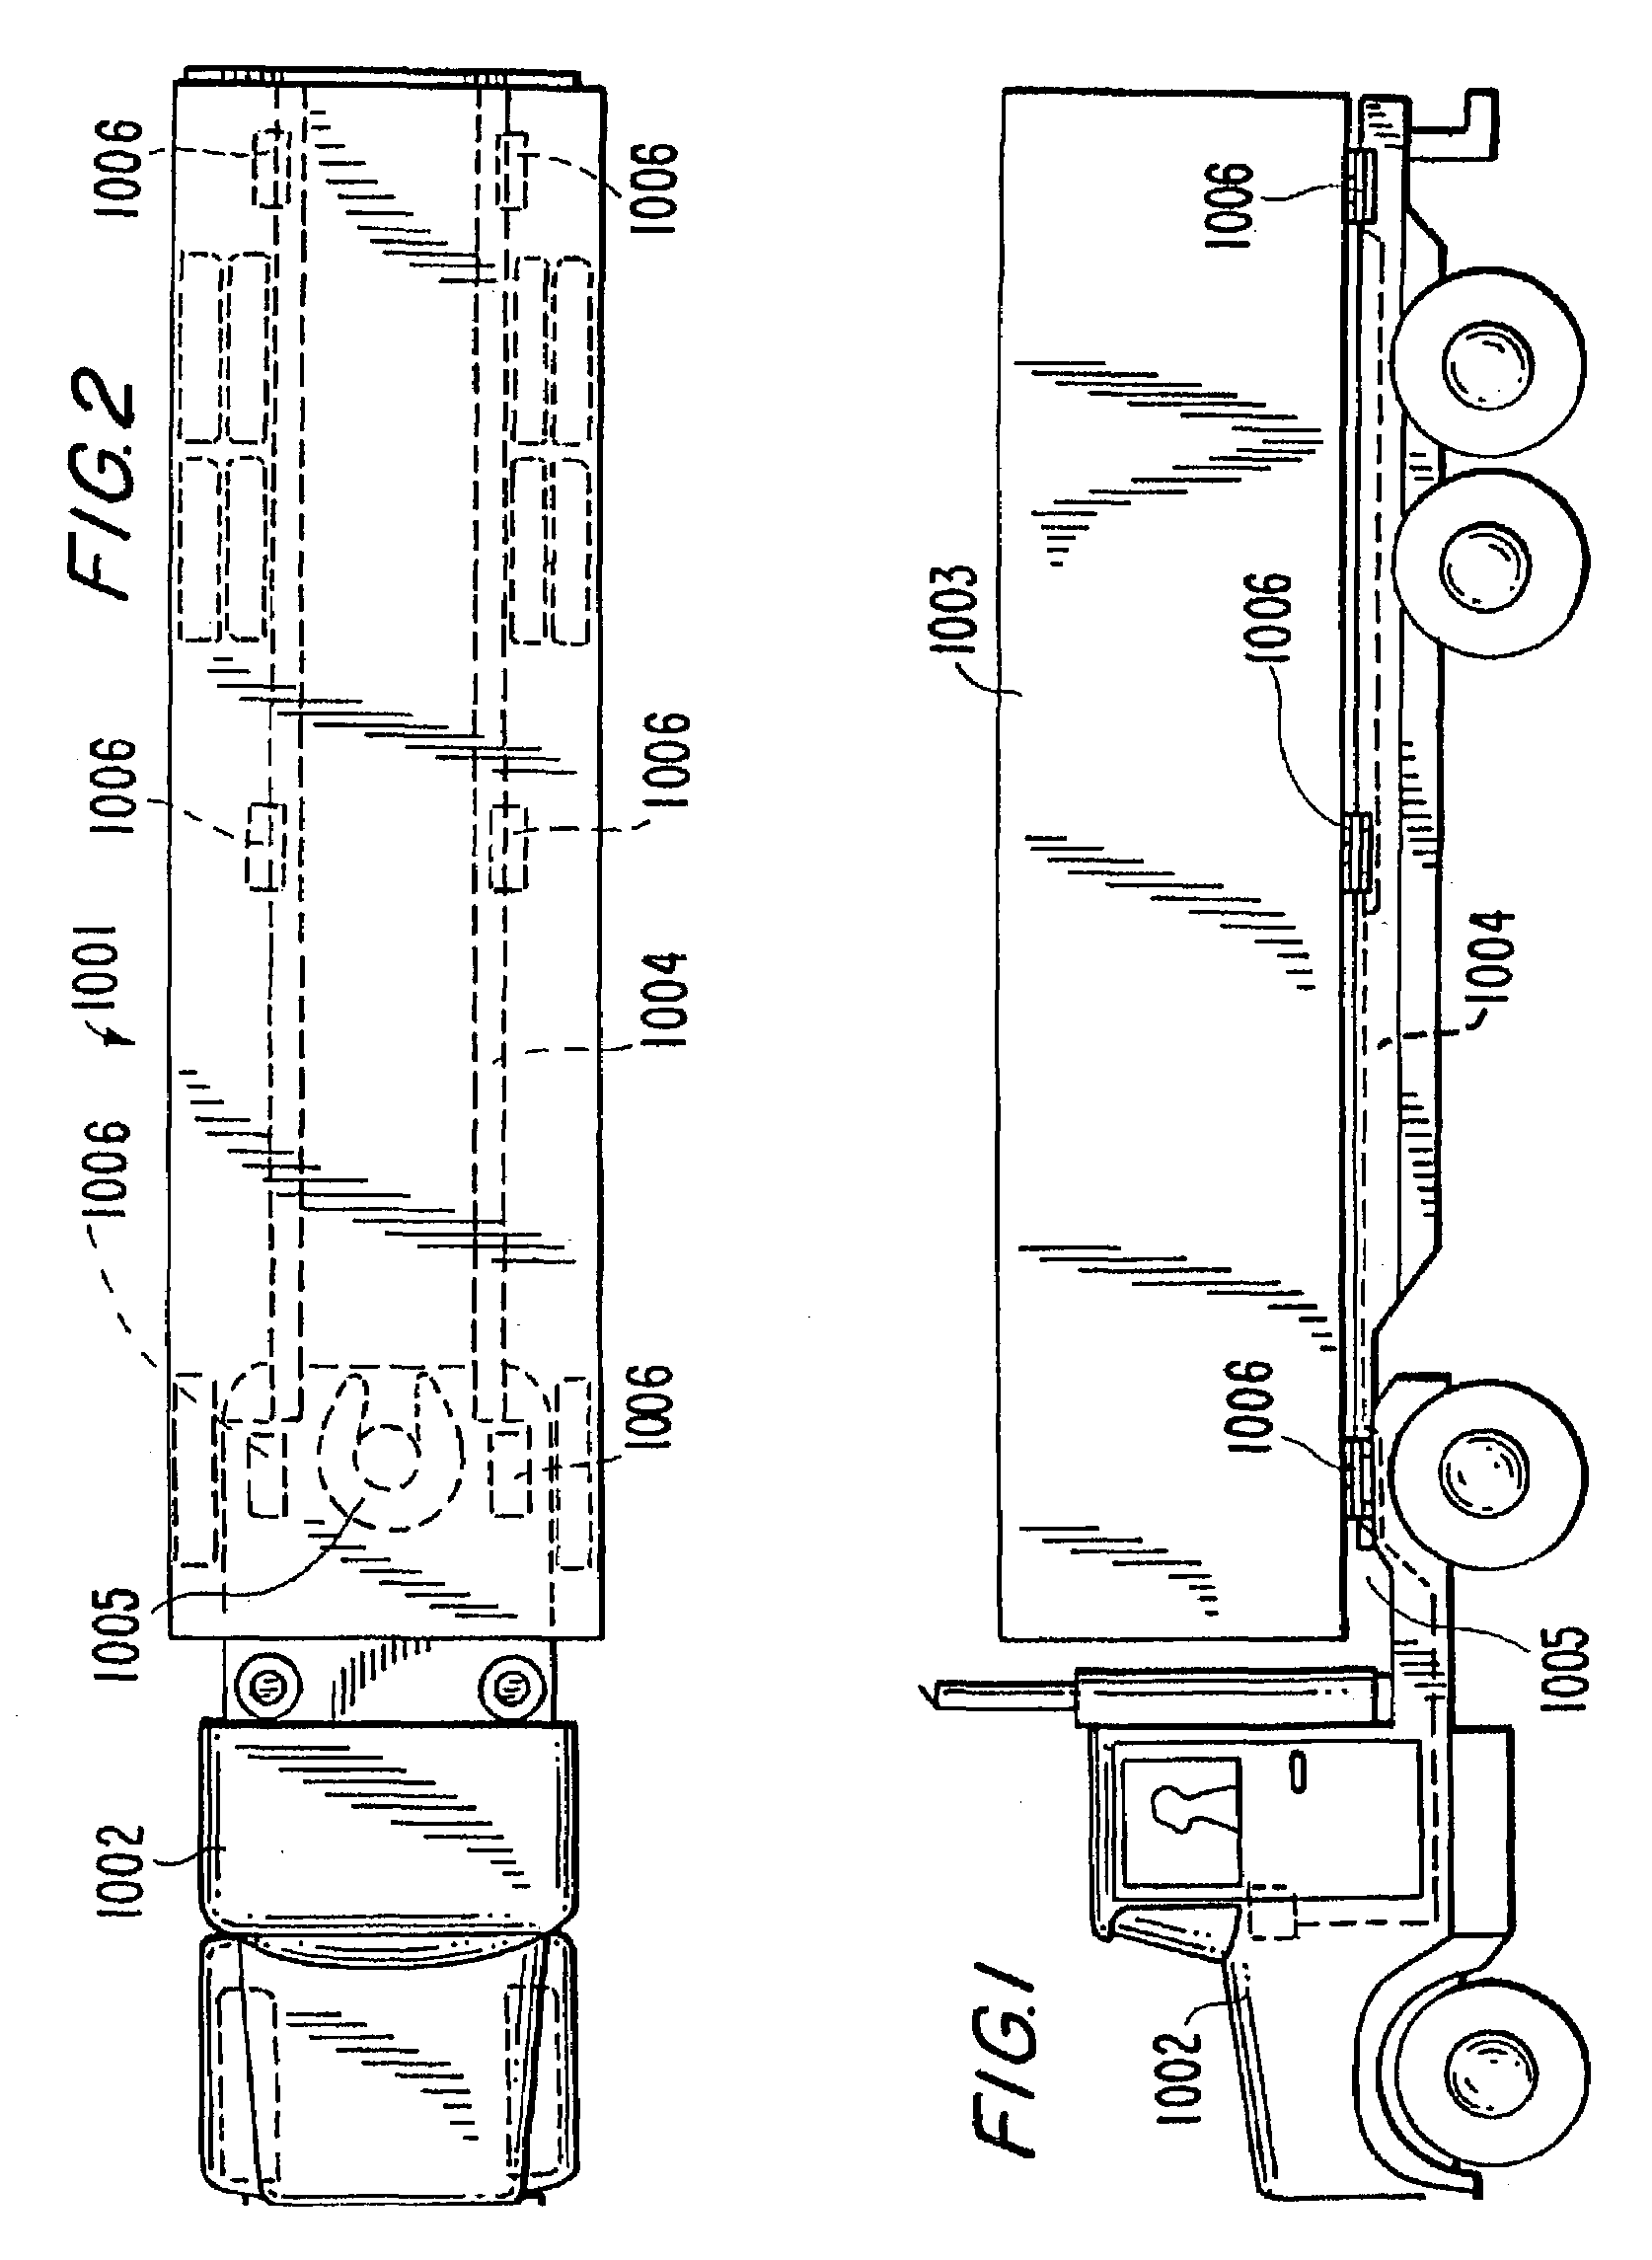 patent us7009118 - vehicle load weighing system and load cells for such systems